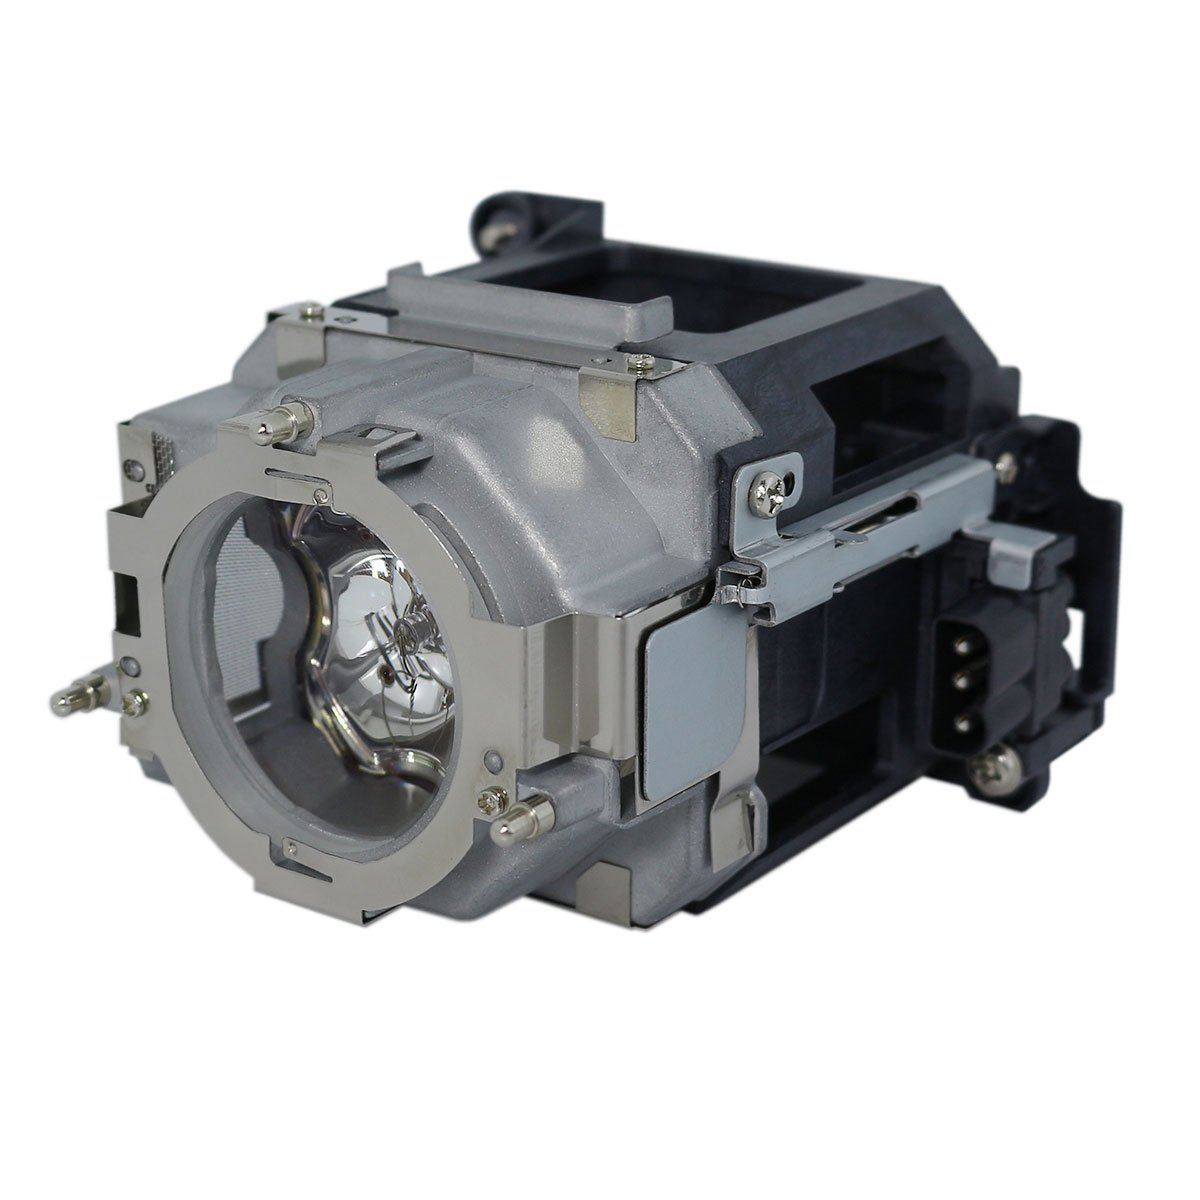 AuraBeam Professional Sharp AN-C430LP/1 Projector Replacement Lamp with Housing (Powered by Ushio)